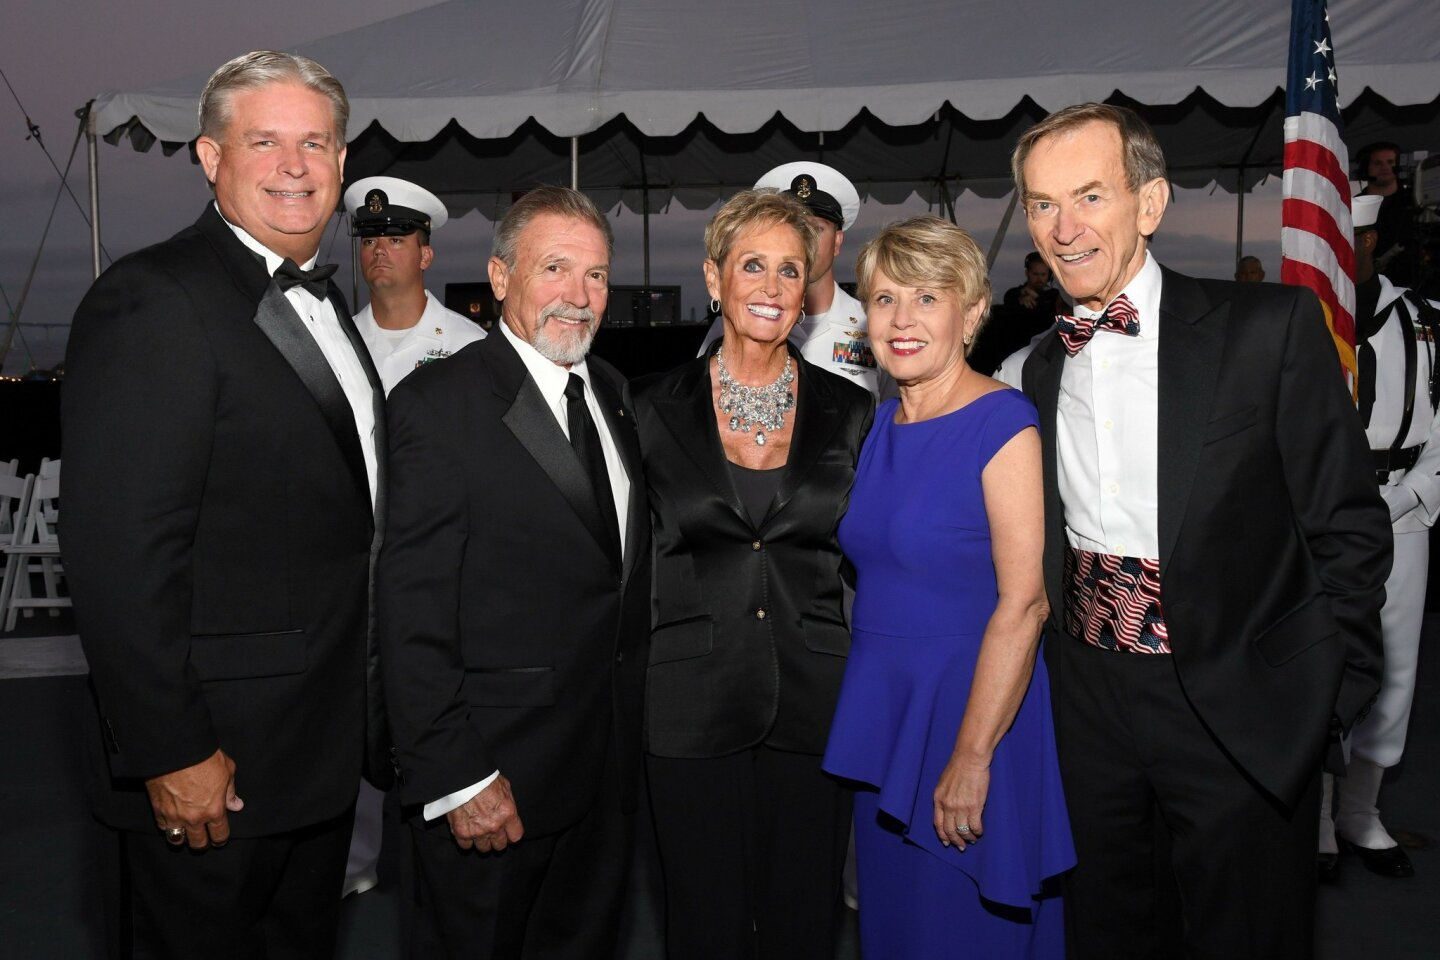 USS Midway American Patriot Award Gala 2016